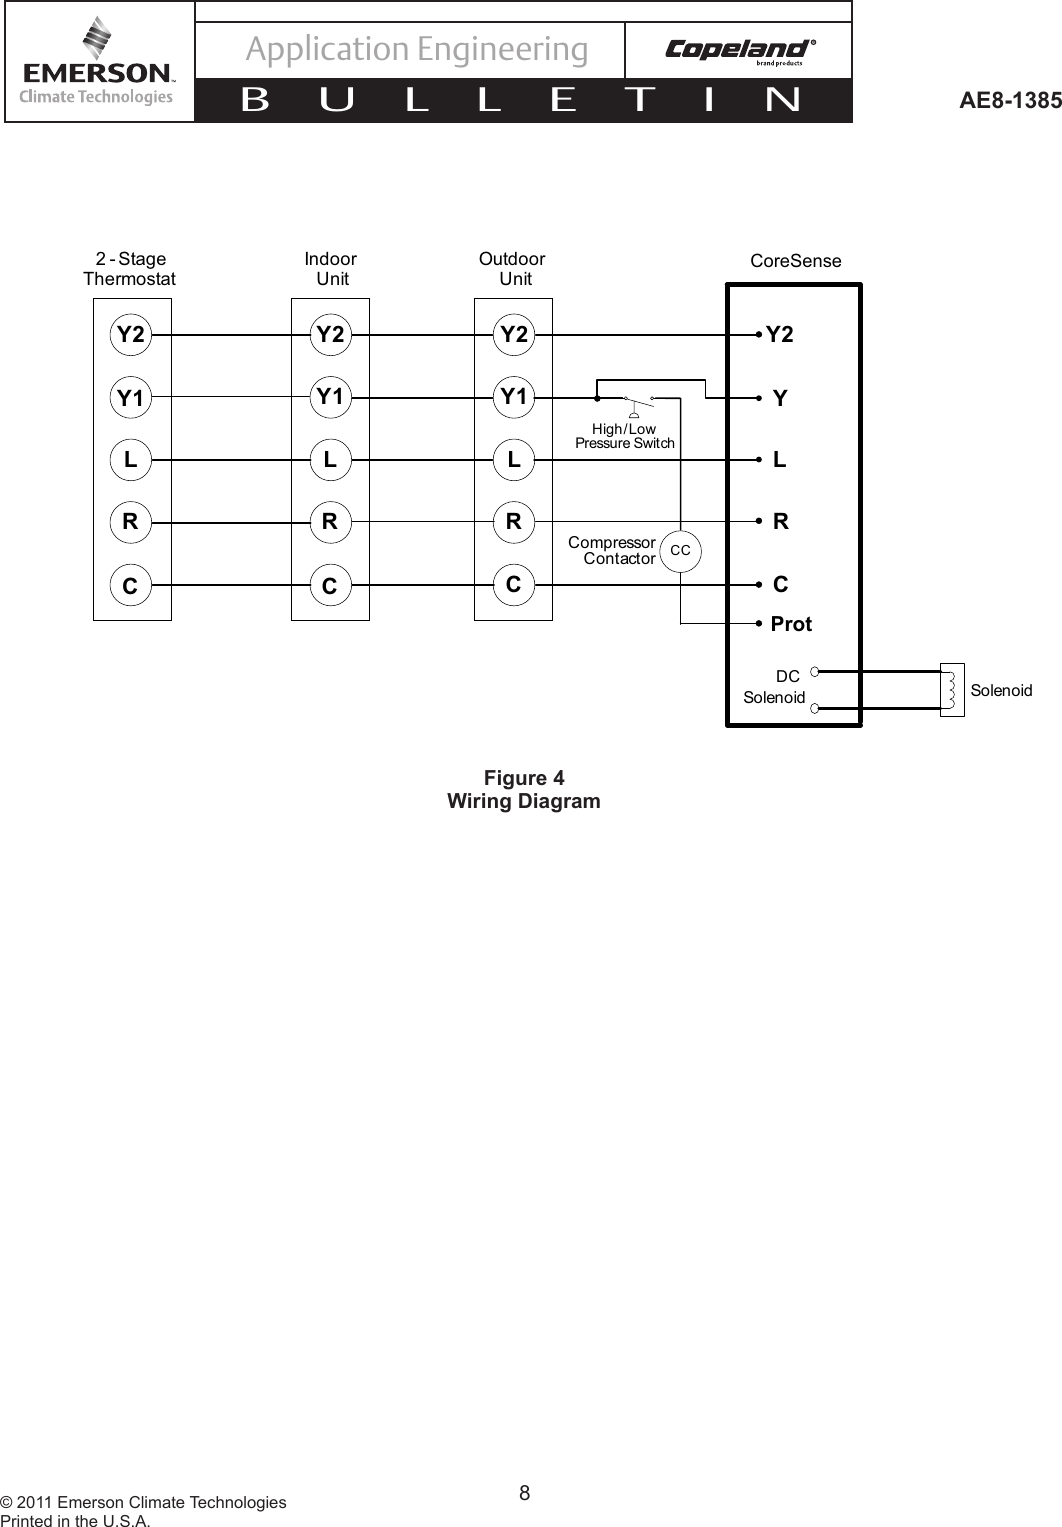 hight resolution of page 8 of 12 emerson emerson ae8 1385 users manual